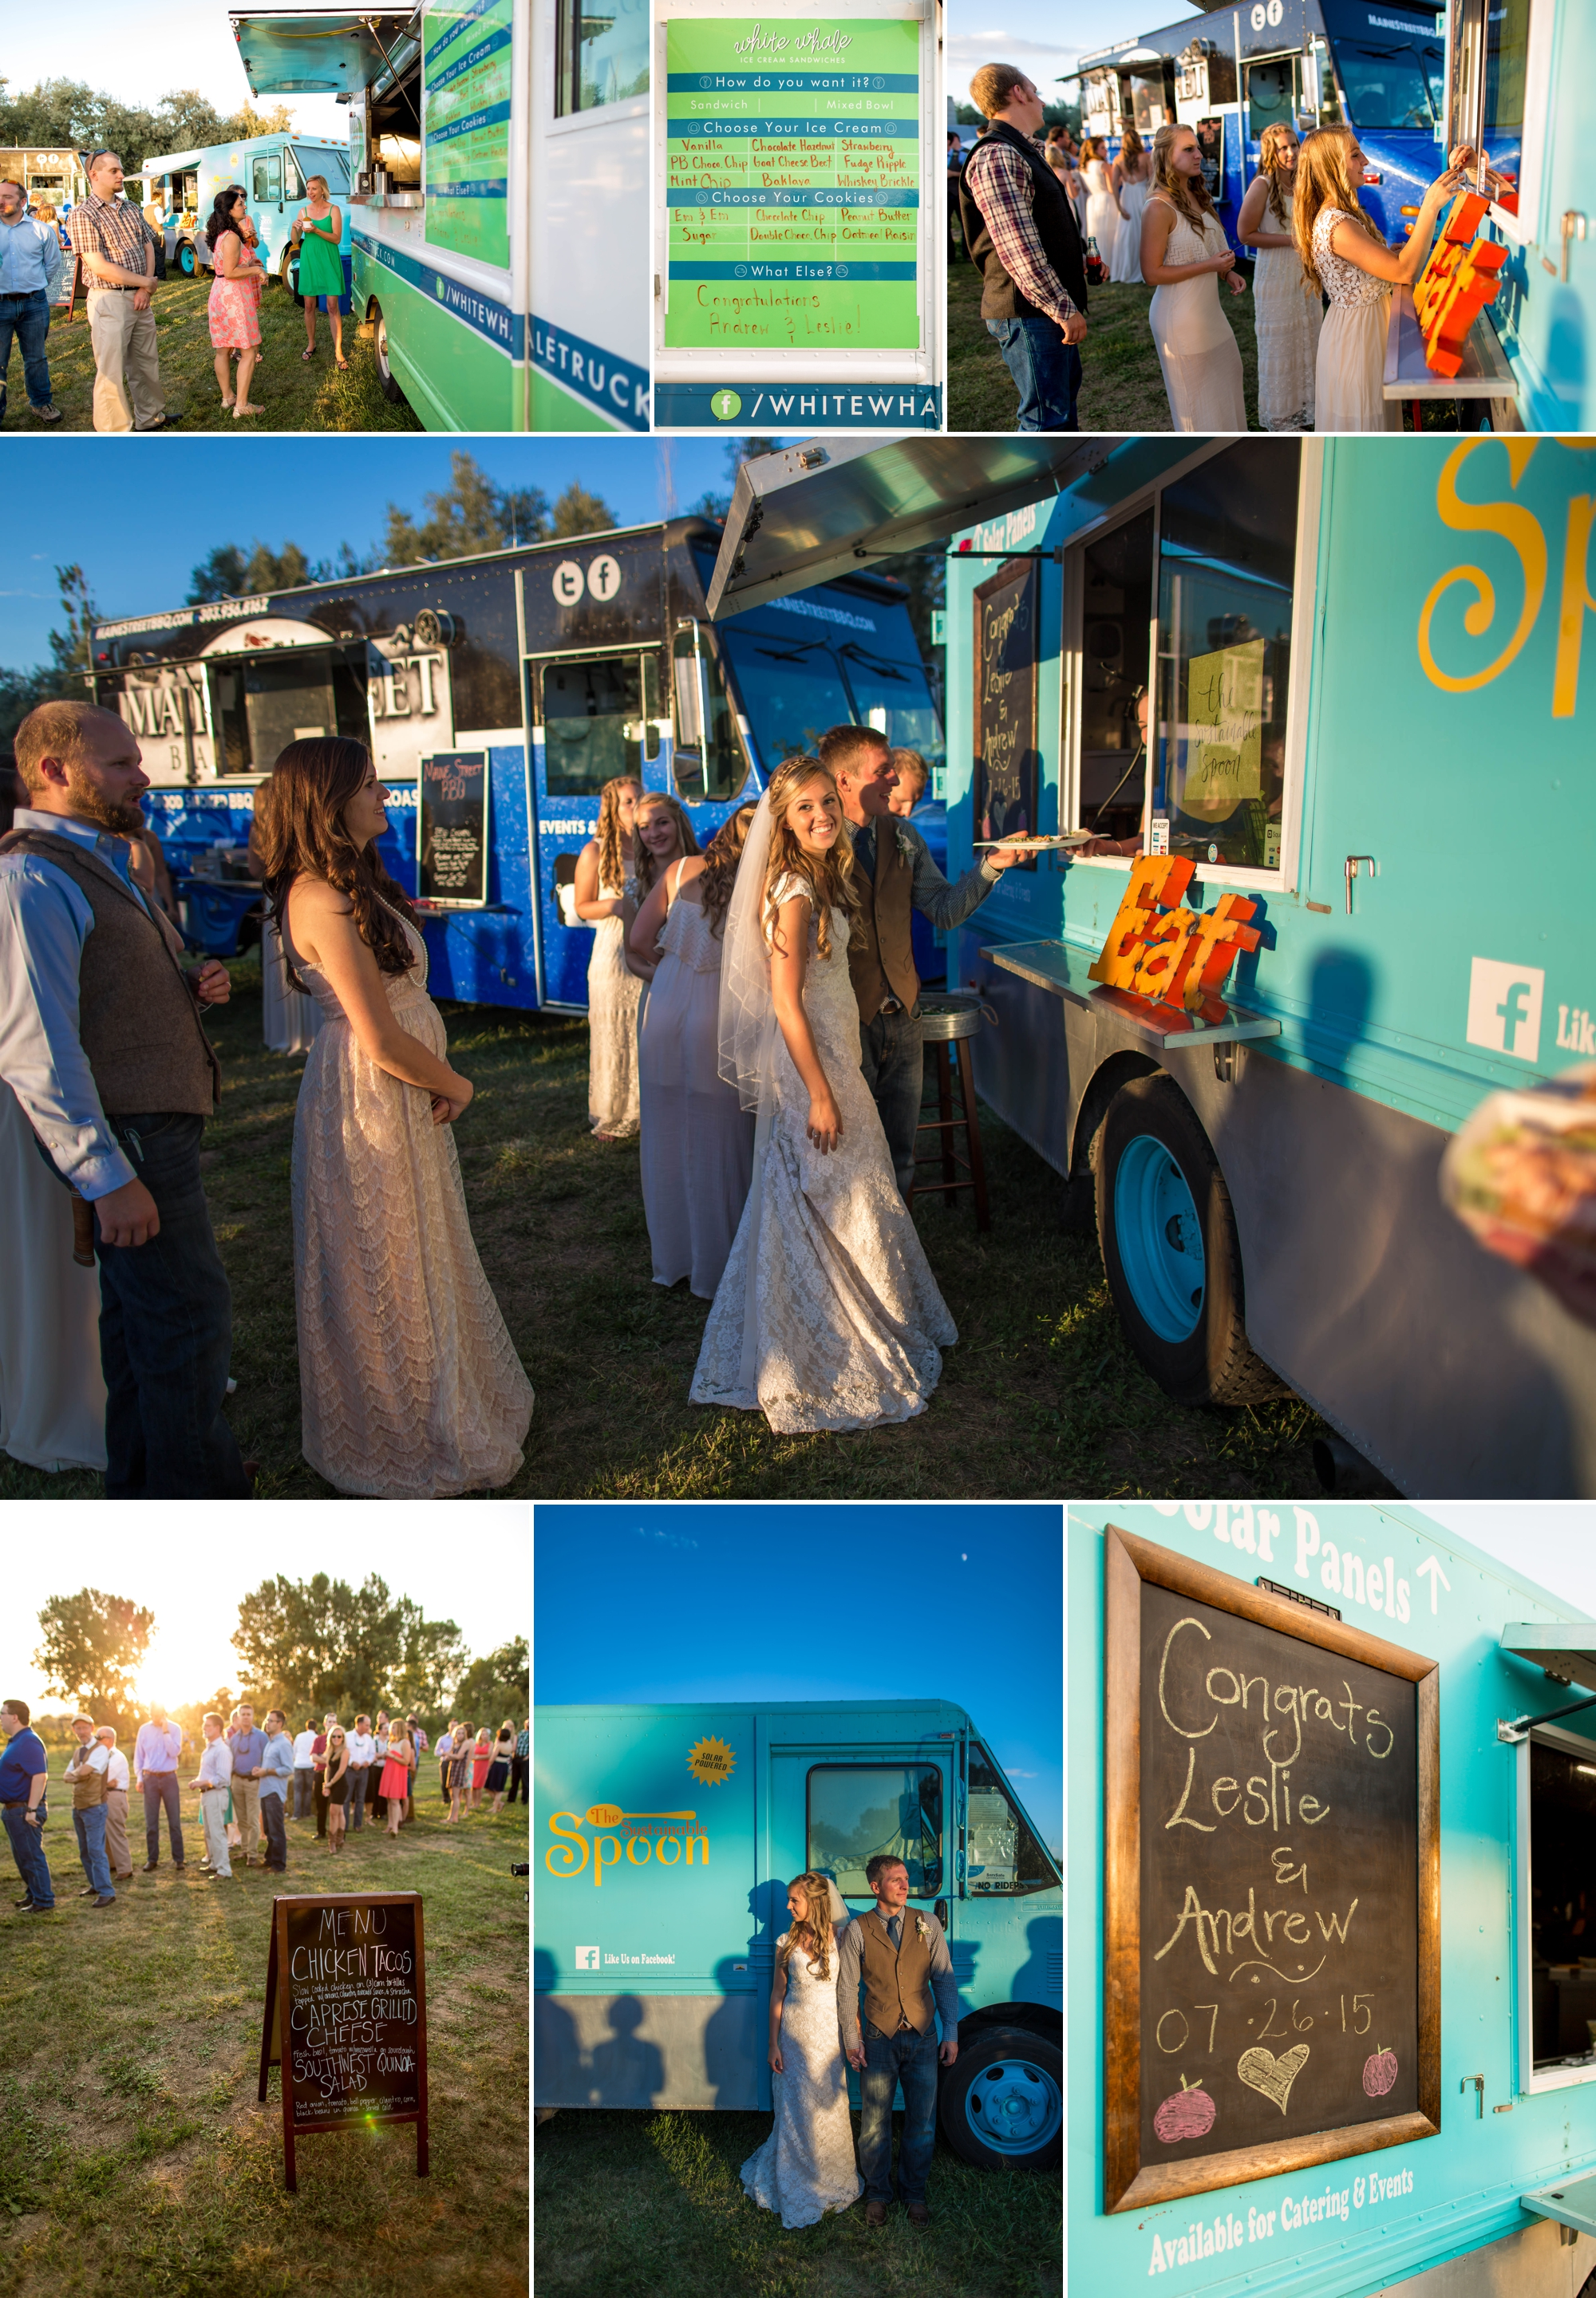 LOVED that all guest were fed by these amazing food trucks!   Maine Street Barbeque Co.  , Taquier Pacifica &  The Sustainable Spoon